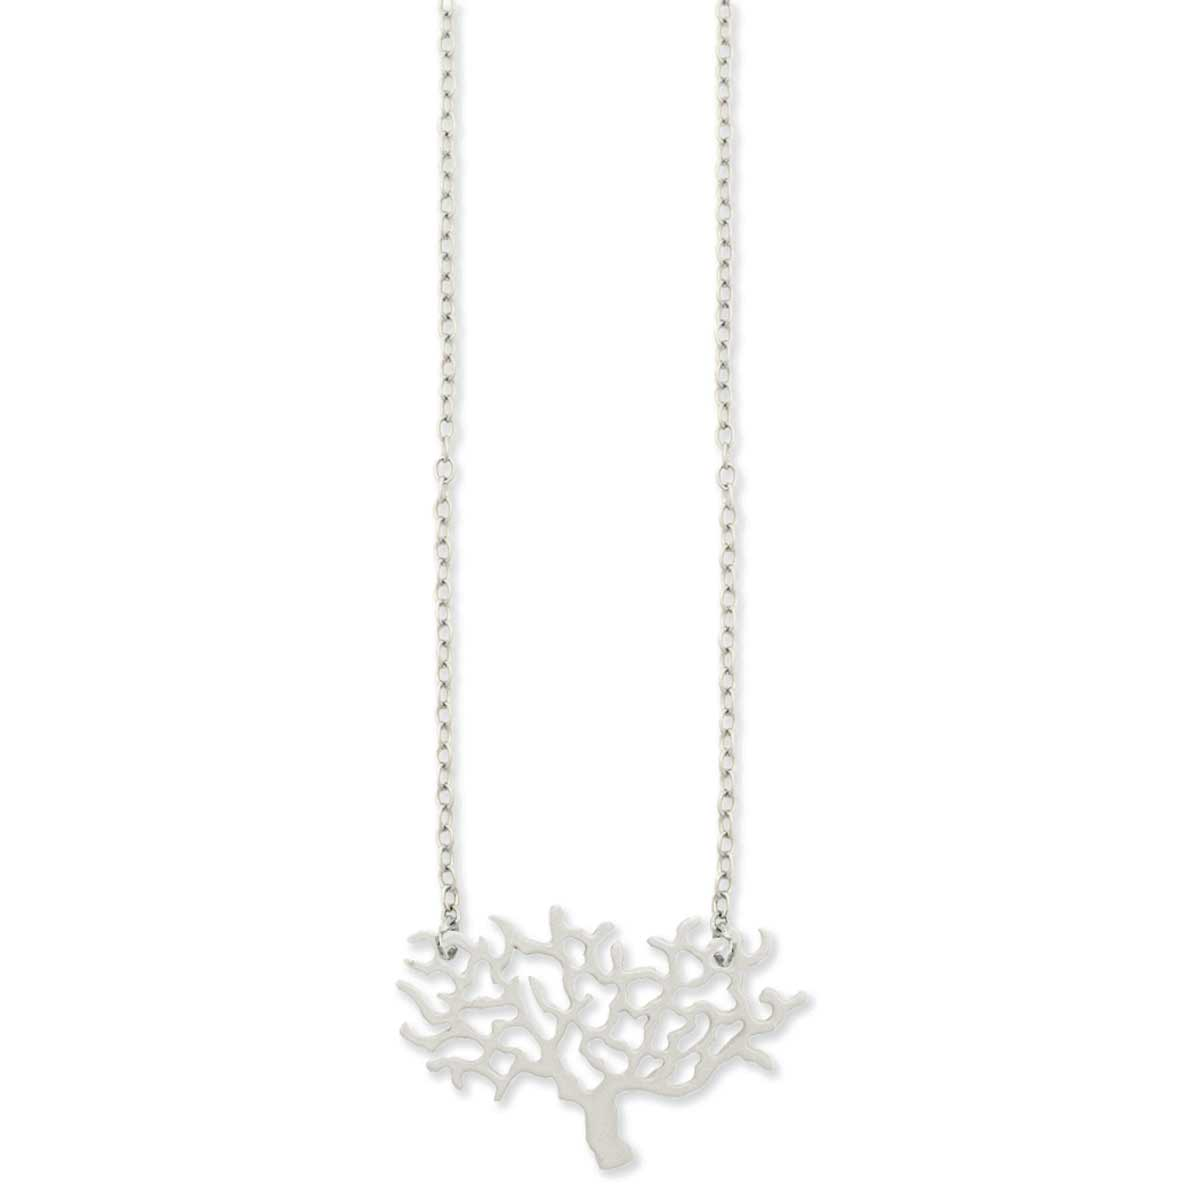 Small Silver Cutout Tree Pendant Necklace